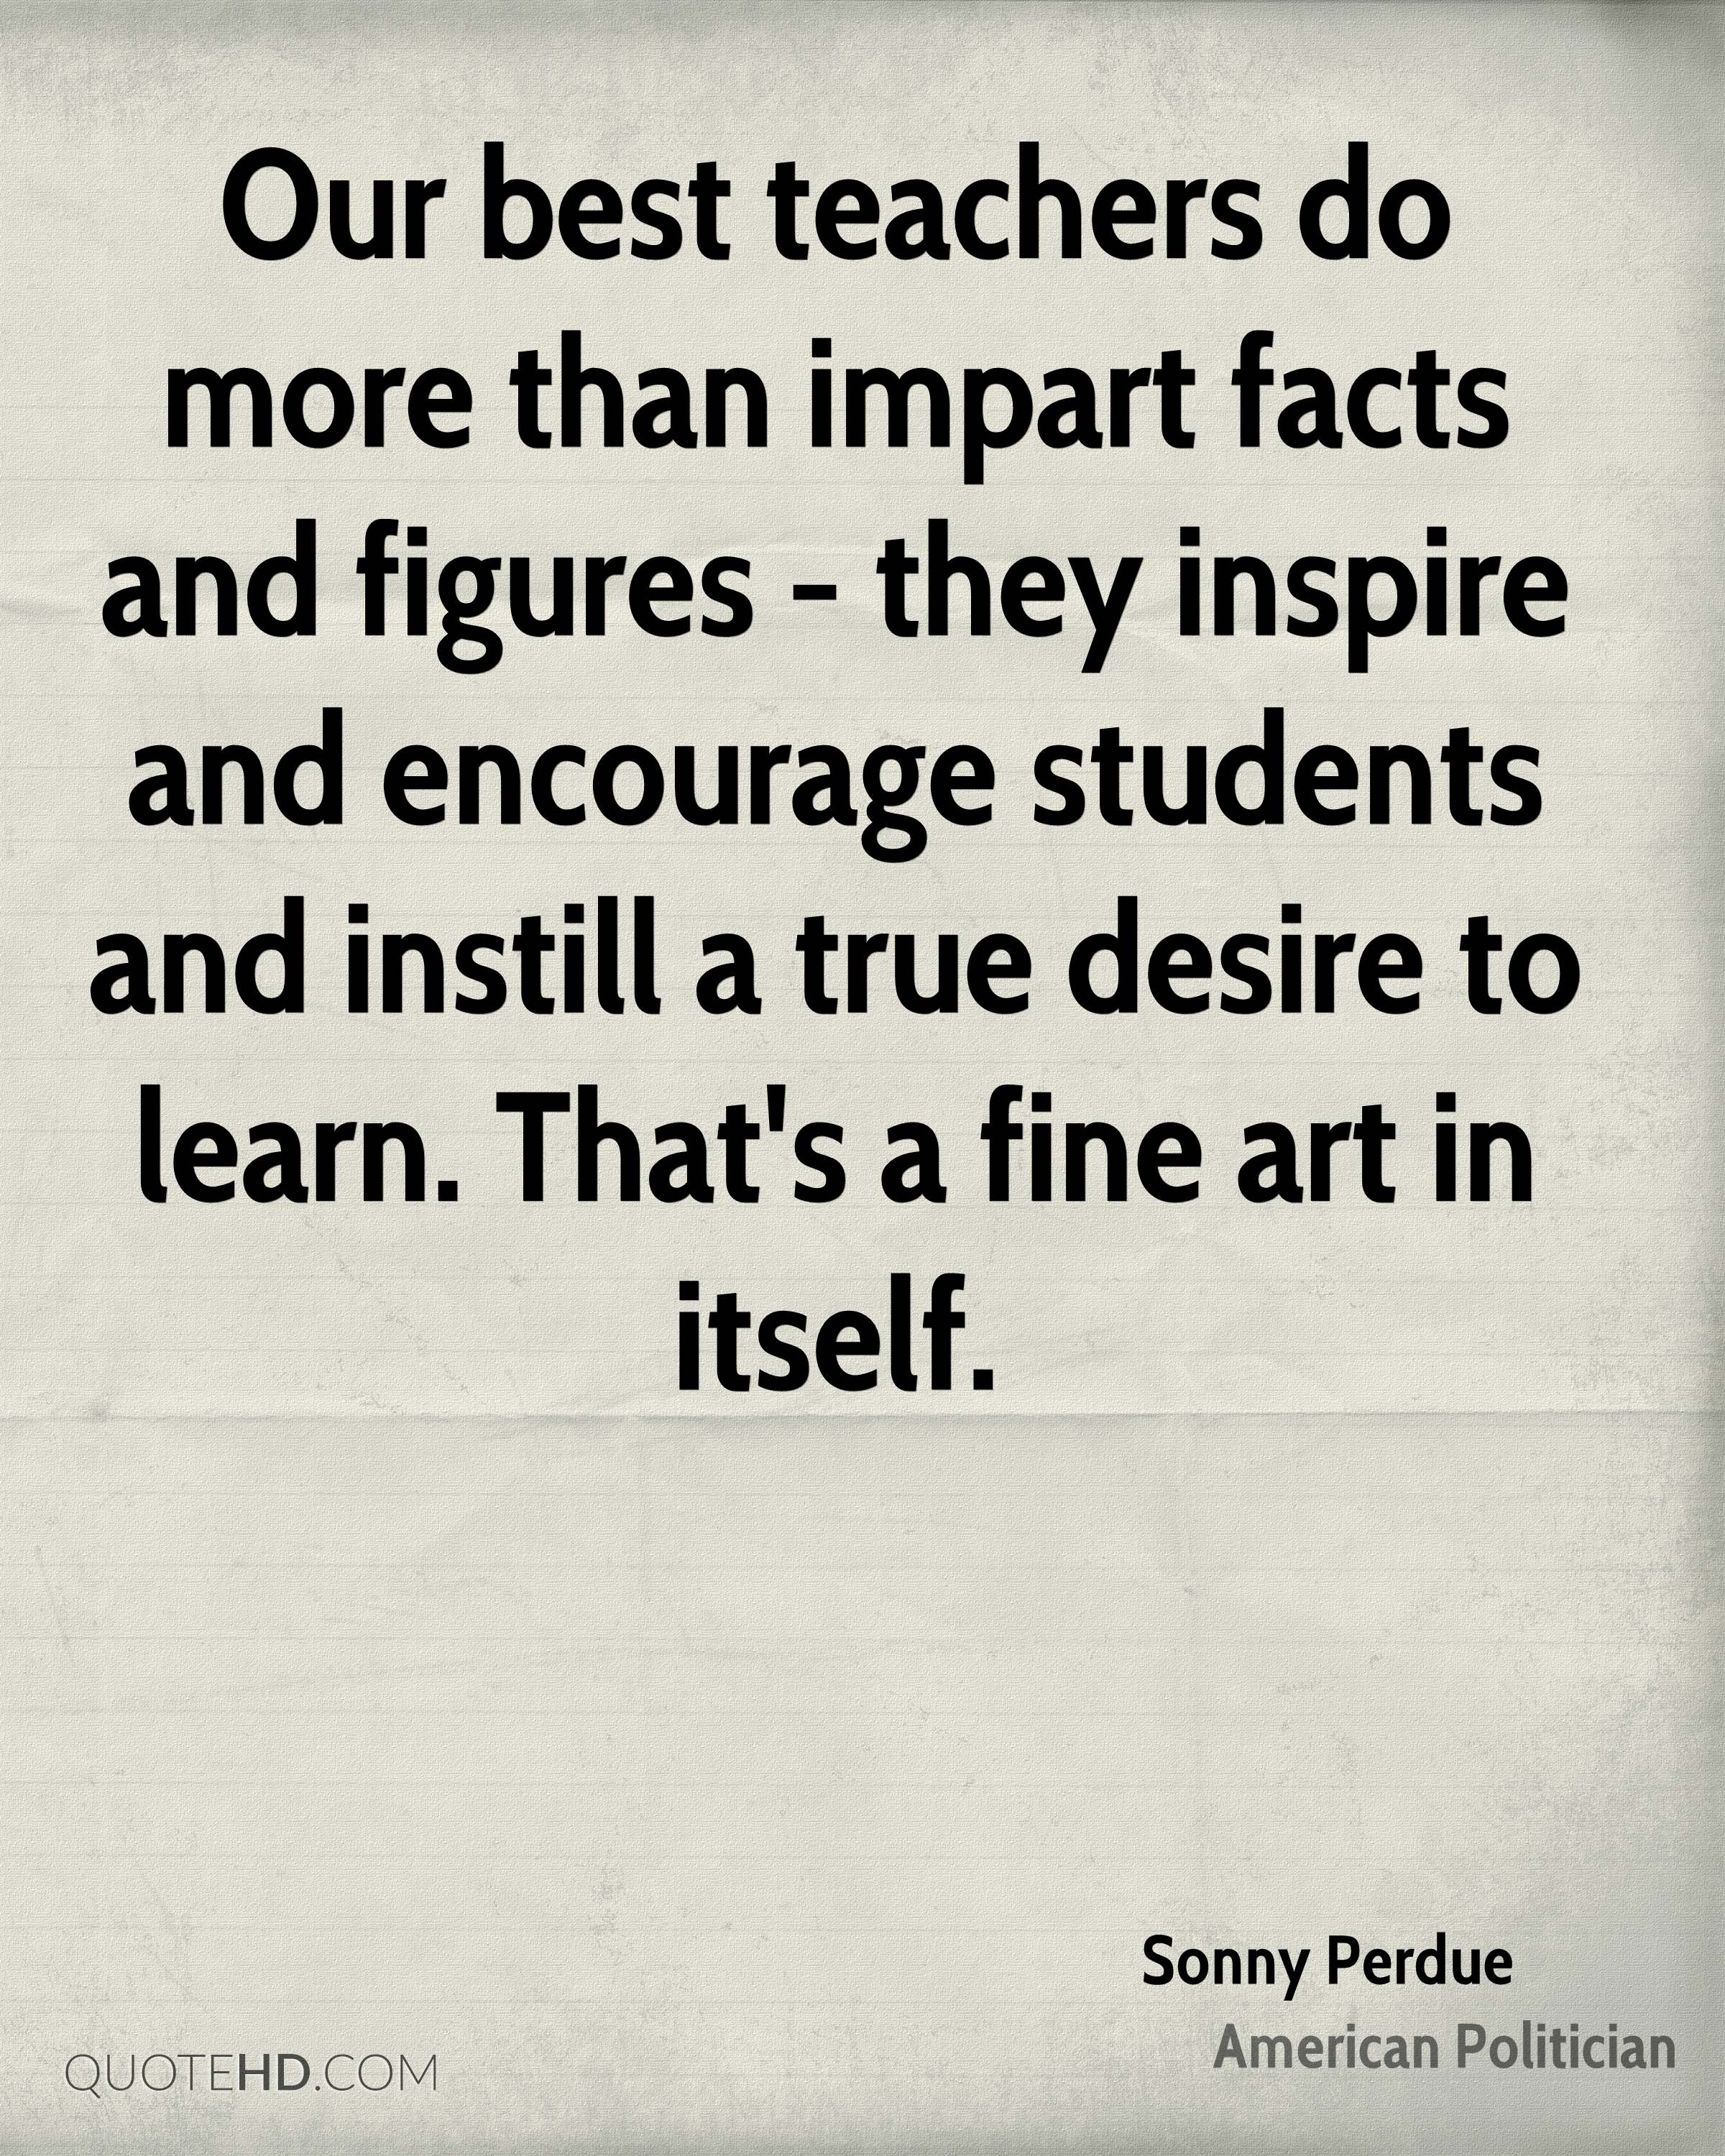 Our best teachers do more than impart facts and figures - they inspire and encourage students and instill a true desire to learn. That's a fine art in itself.